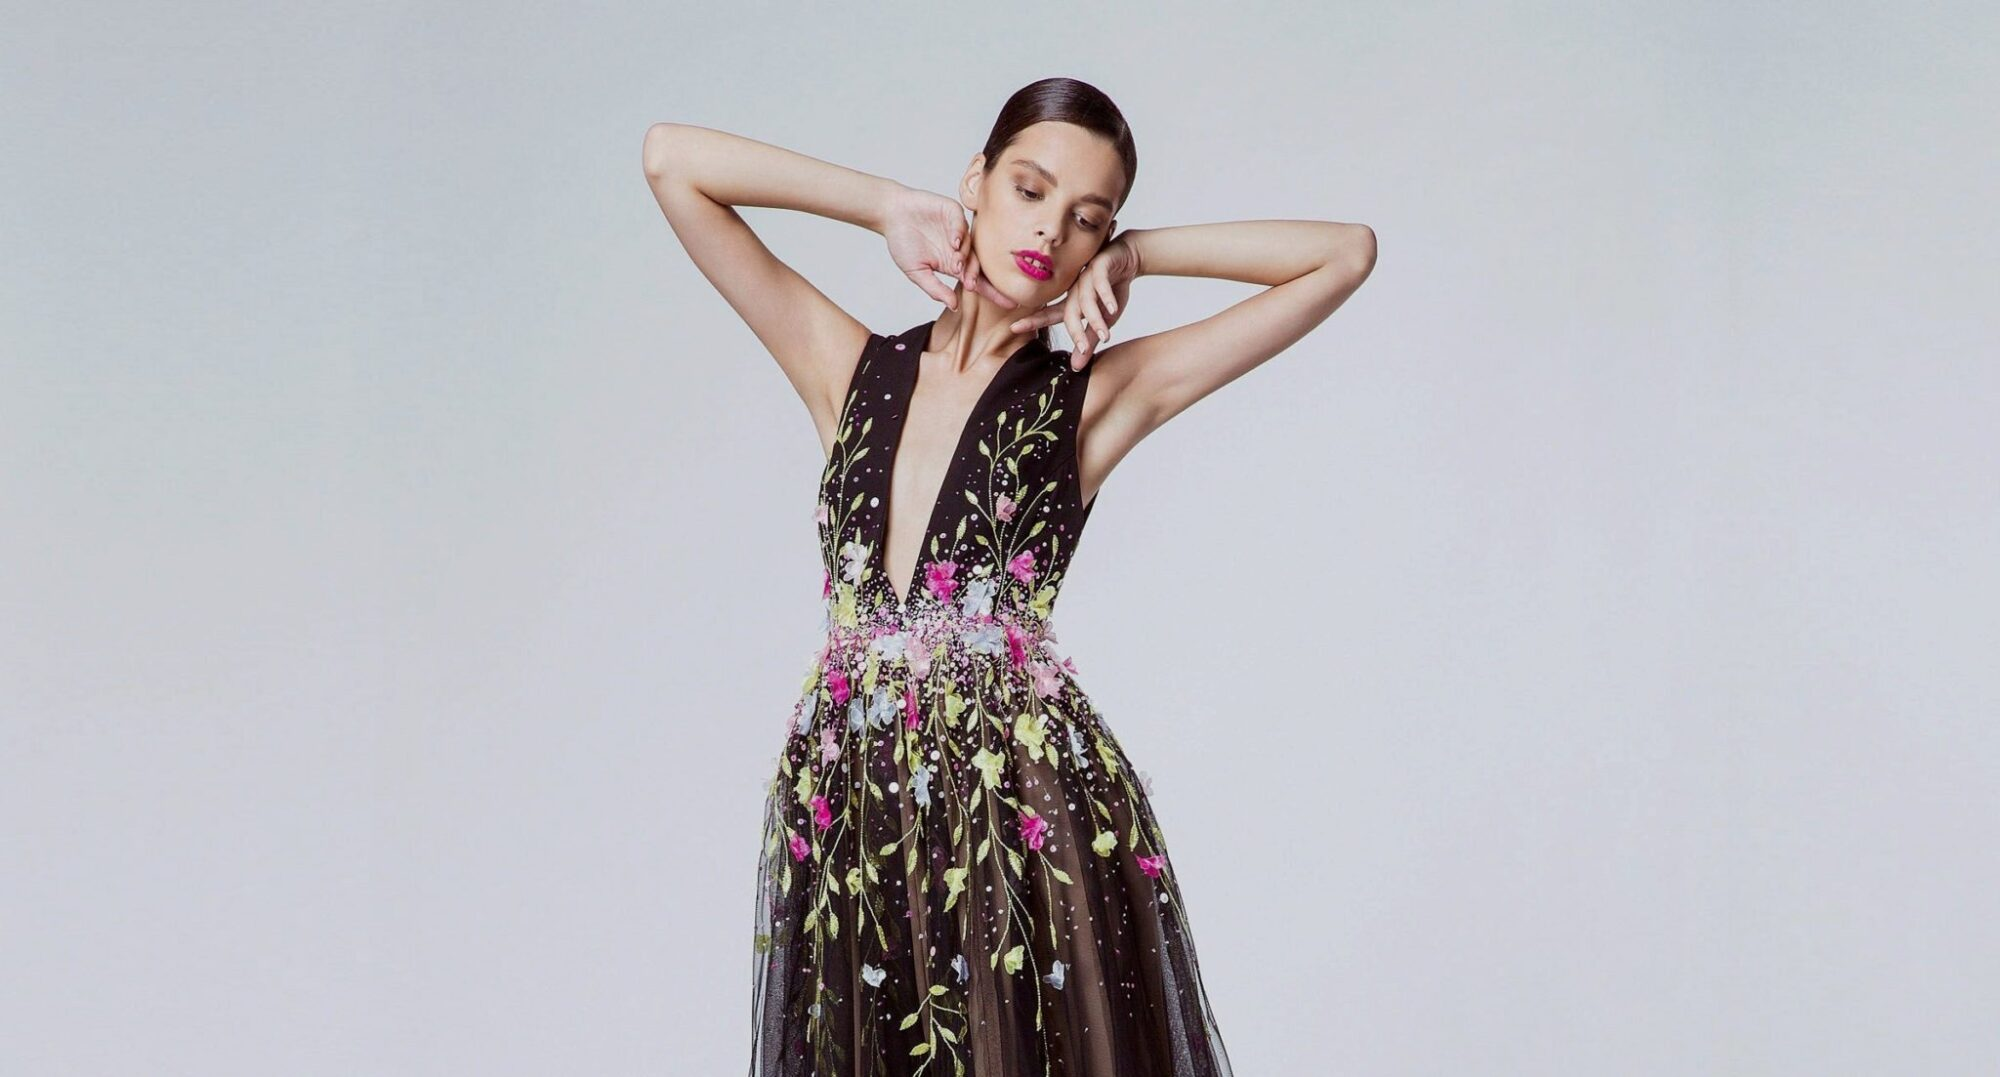 GEORGES HOBEIKA SPRING 2015 RTW COLLECTION